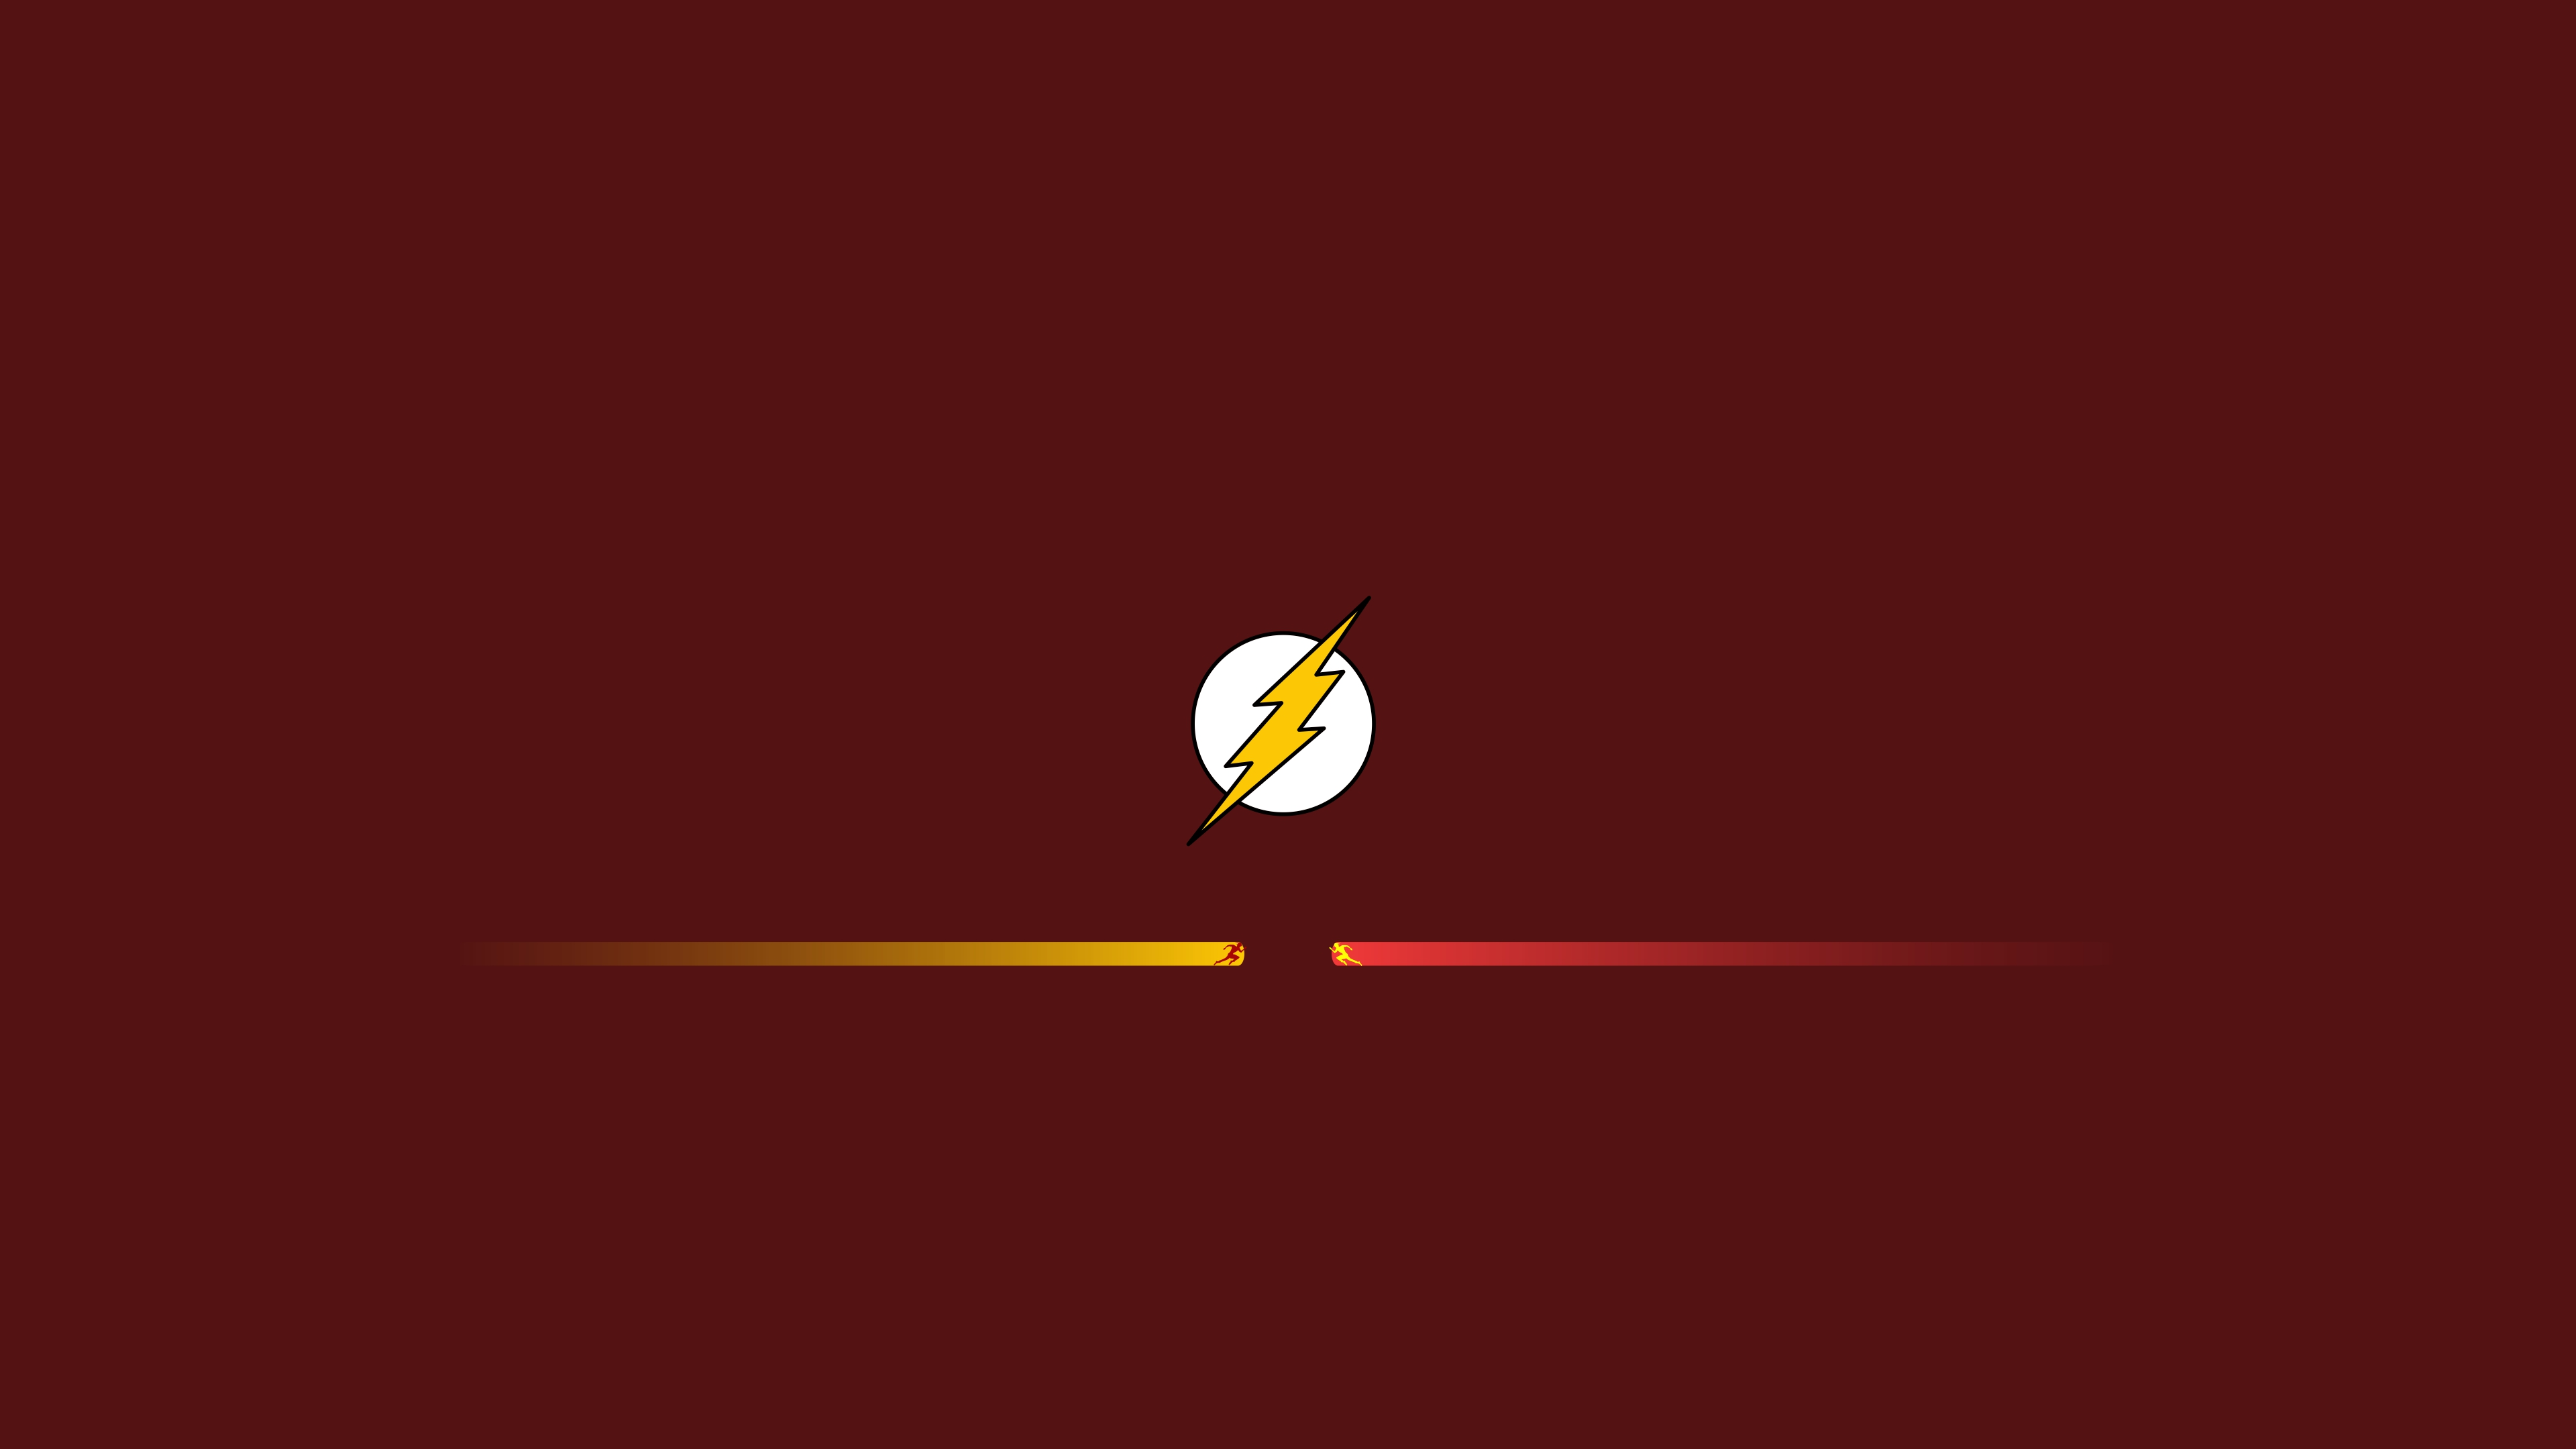 750x1334 The Flash And Reverse Flash Minimalism Iphone 6 Iphone 6s